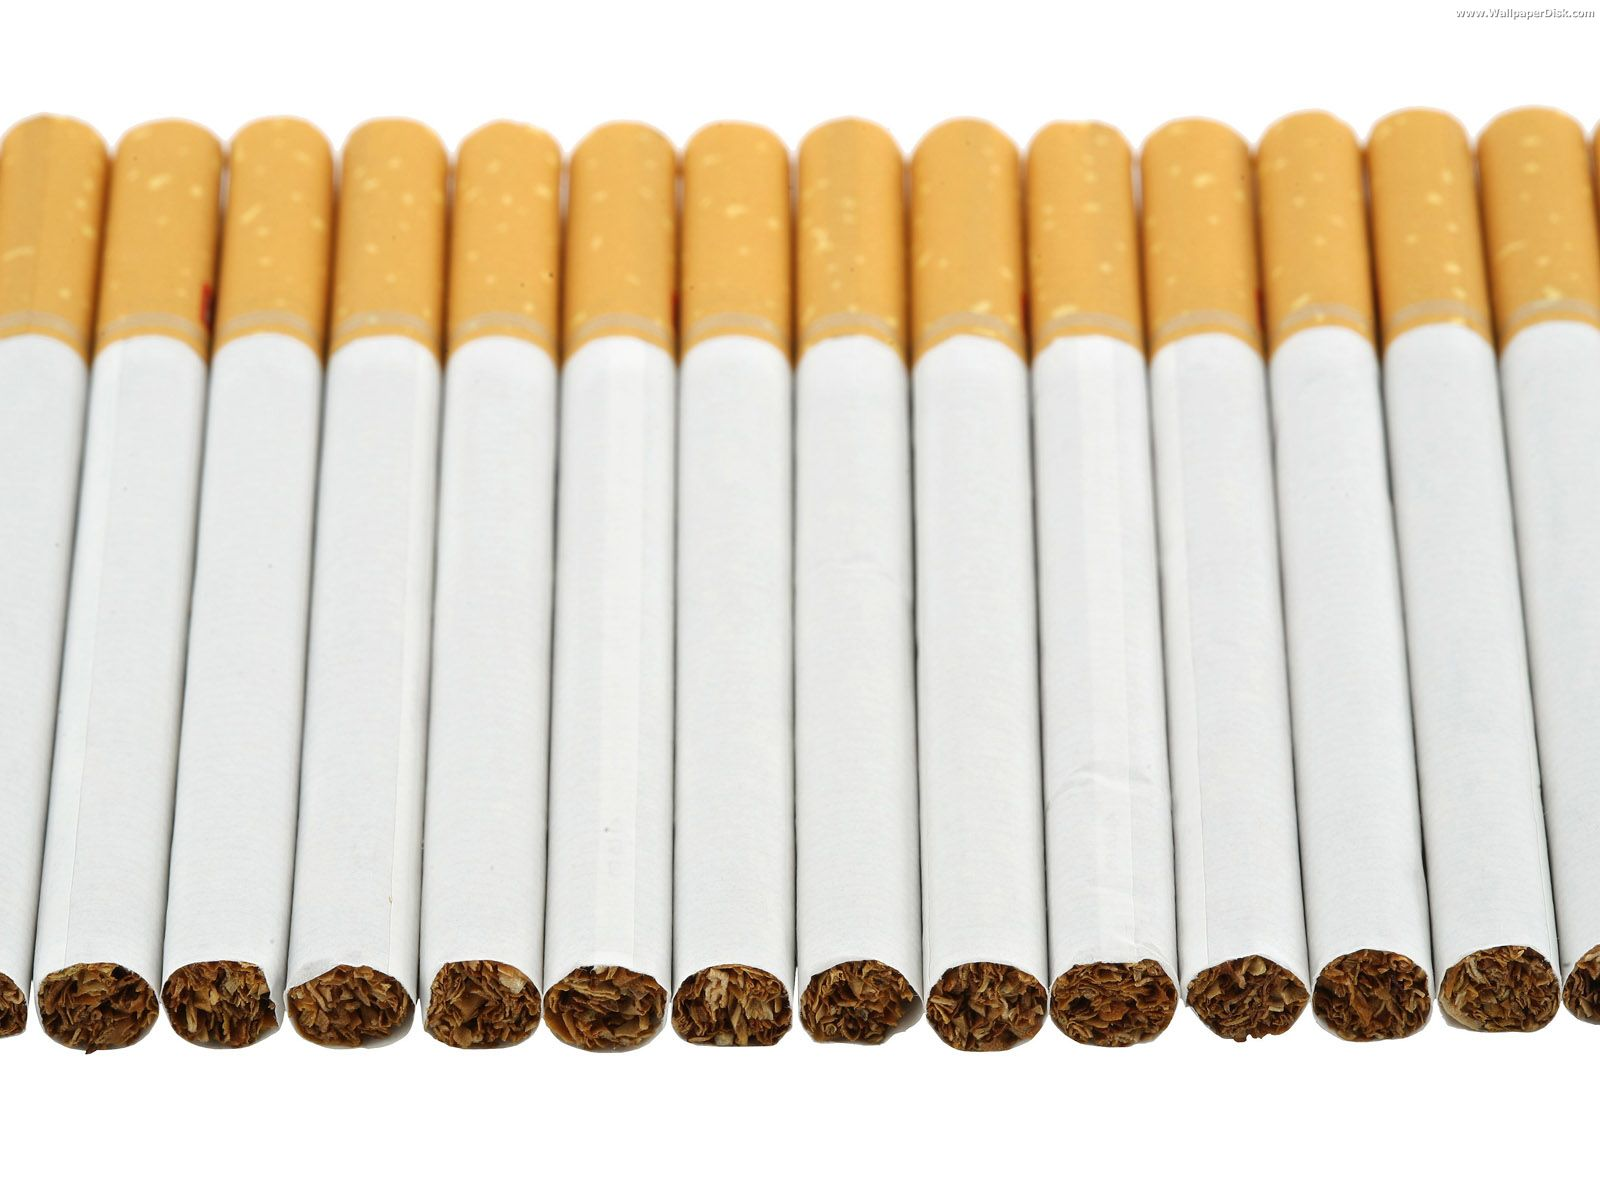 Photo credit: (cigarettes-cigarettes.com)